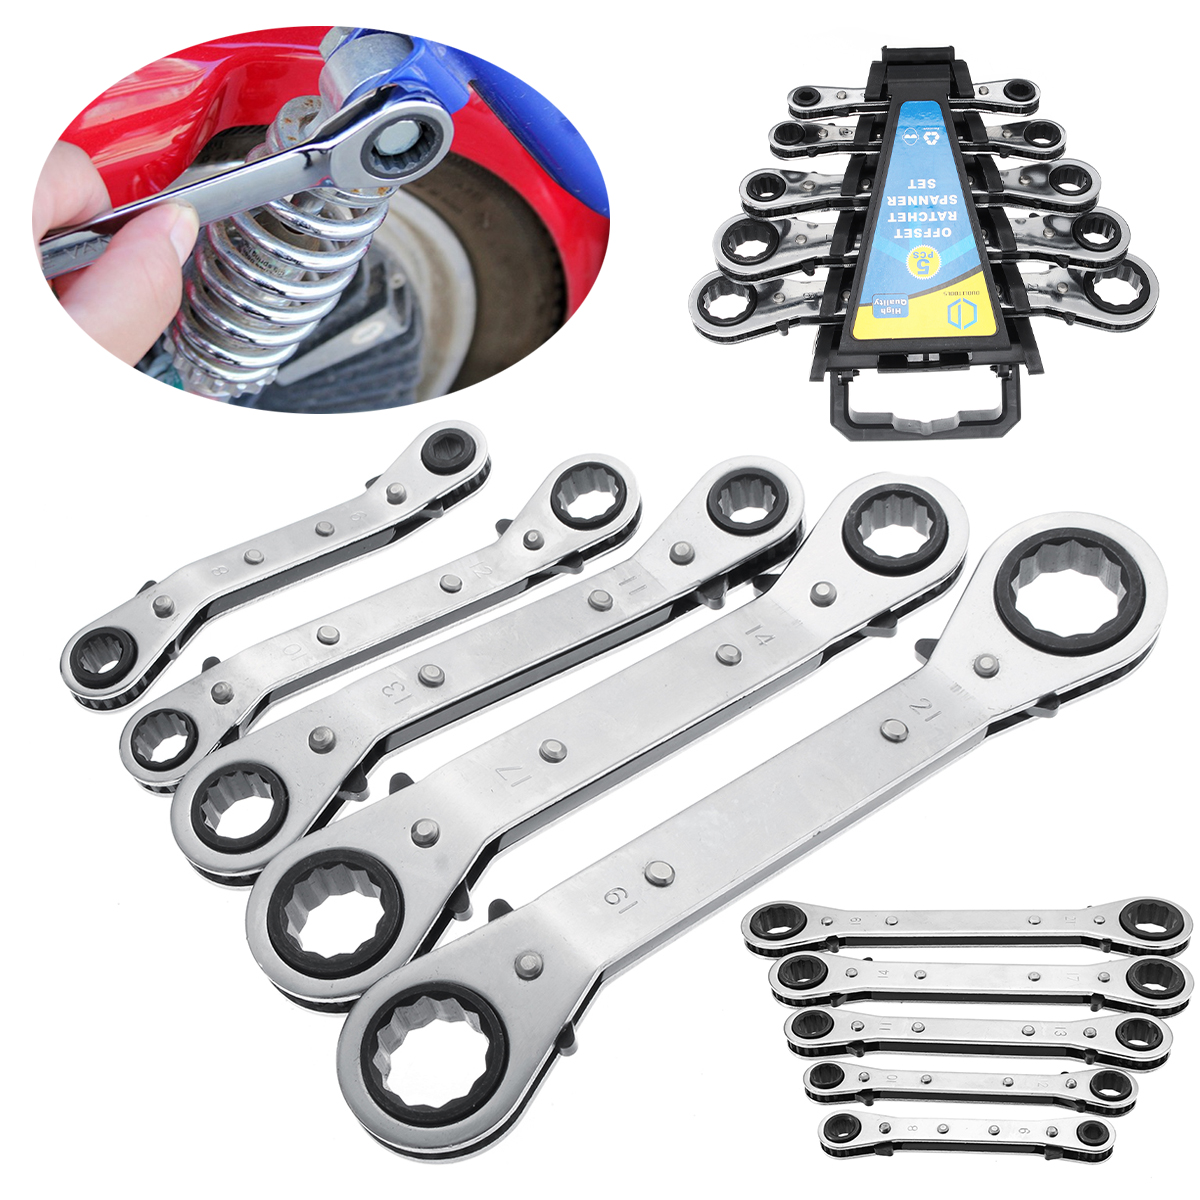 5Pcs Metric Offset Ring Wrench Spanner Ratchet Metric Hand DIY Tool Set